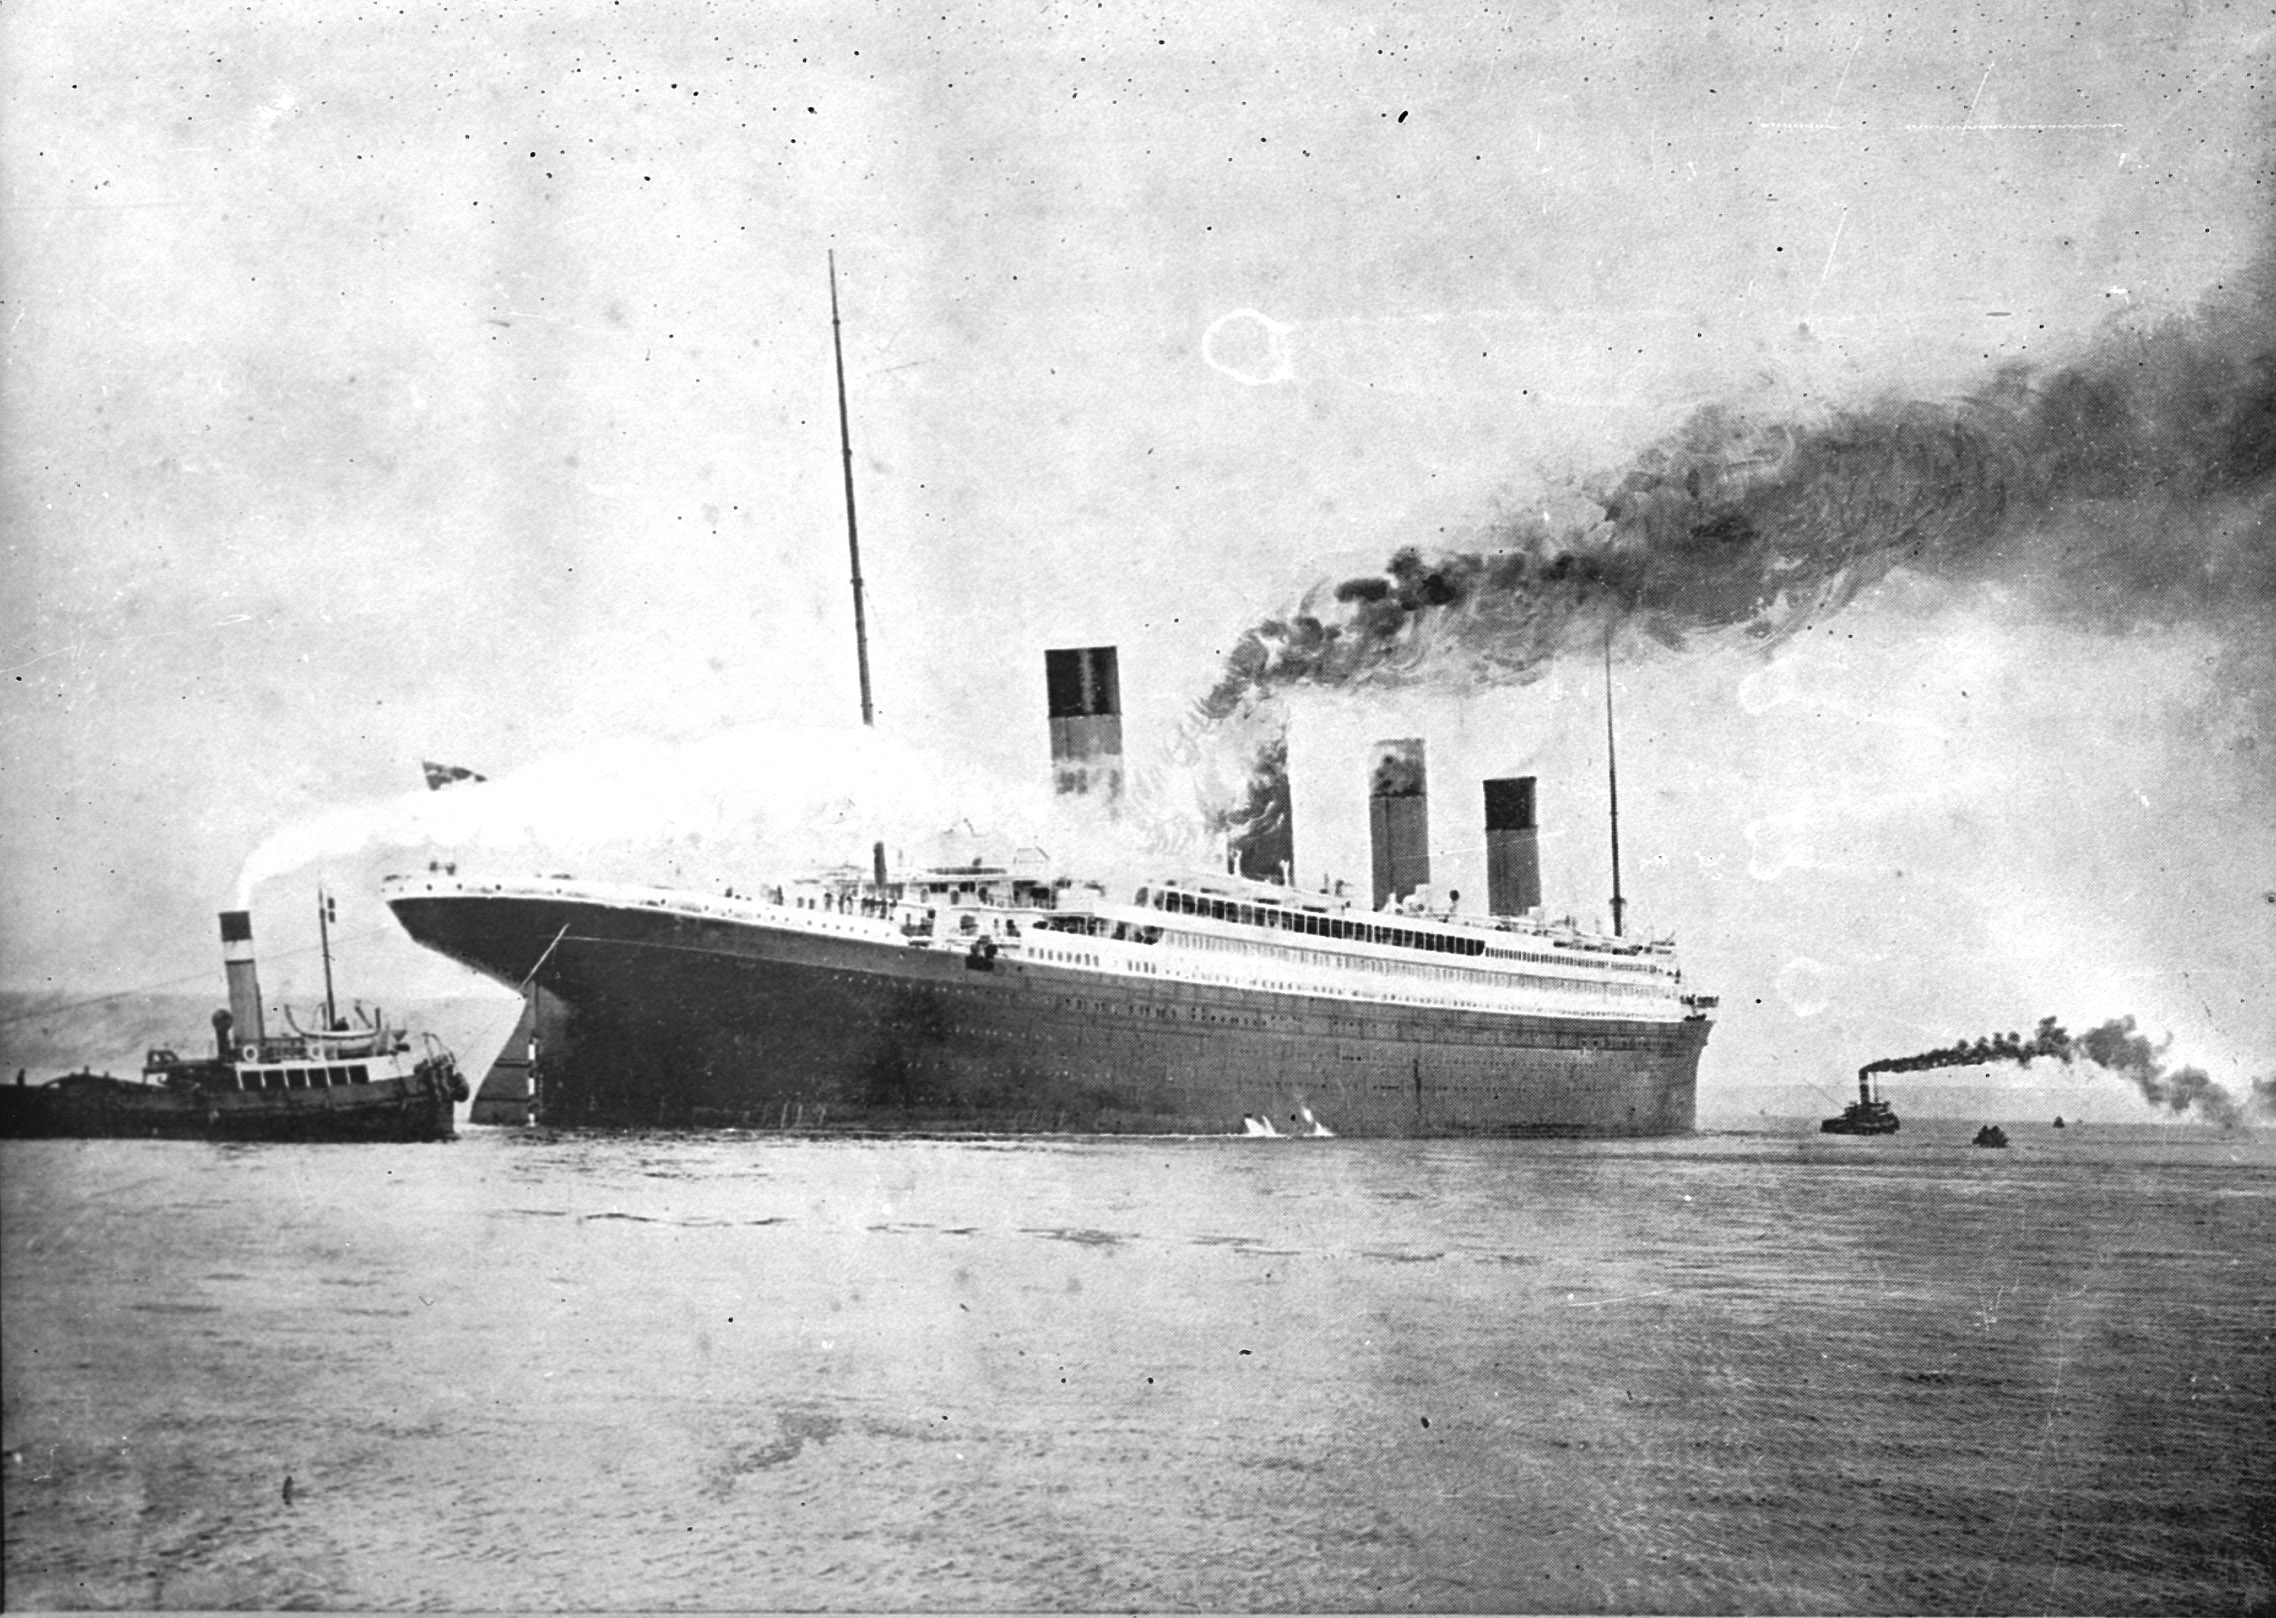 TITANIC SCANNED FROM GLASS NEG.